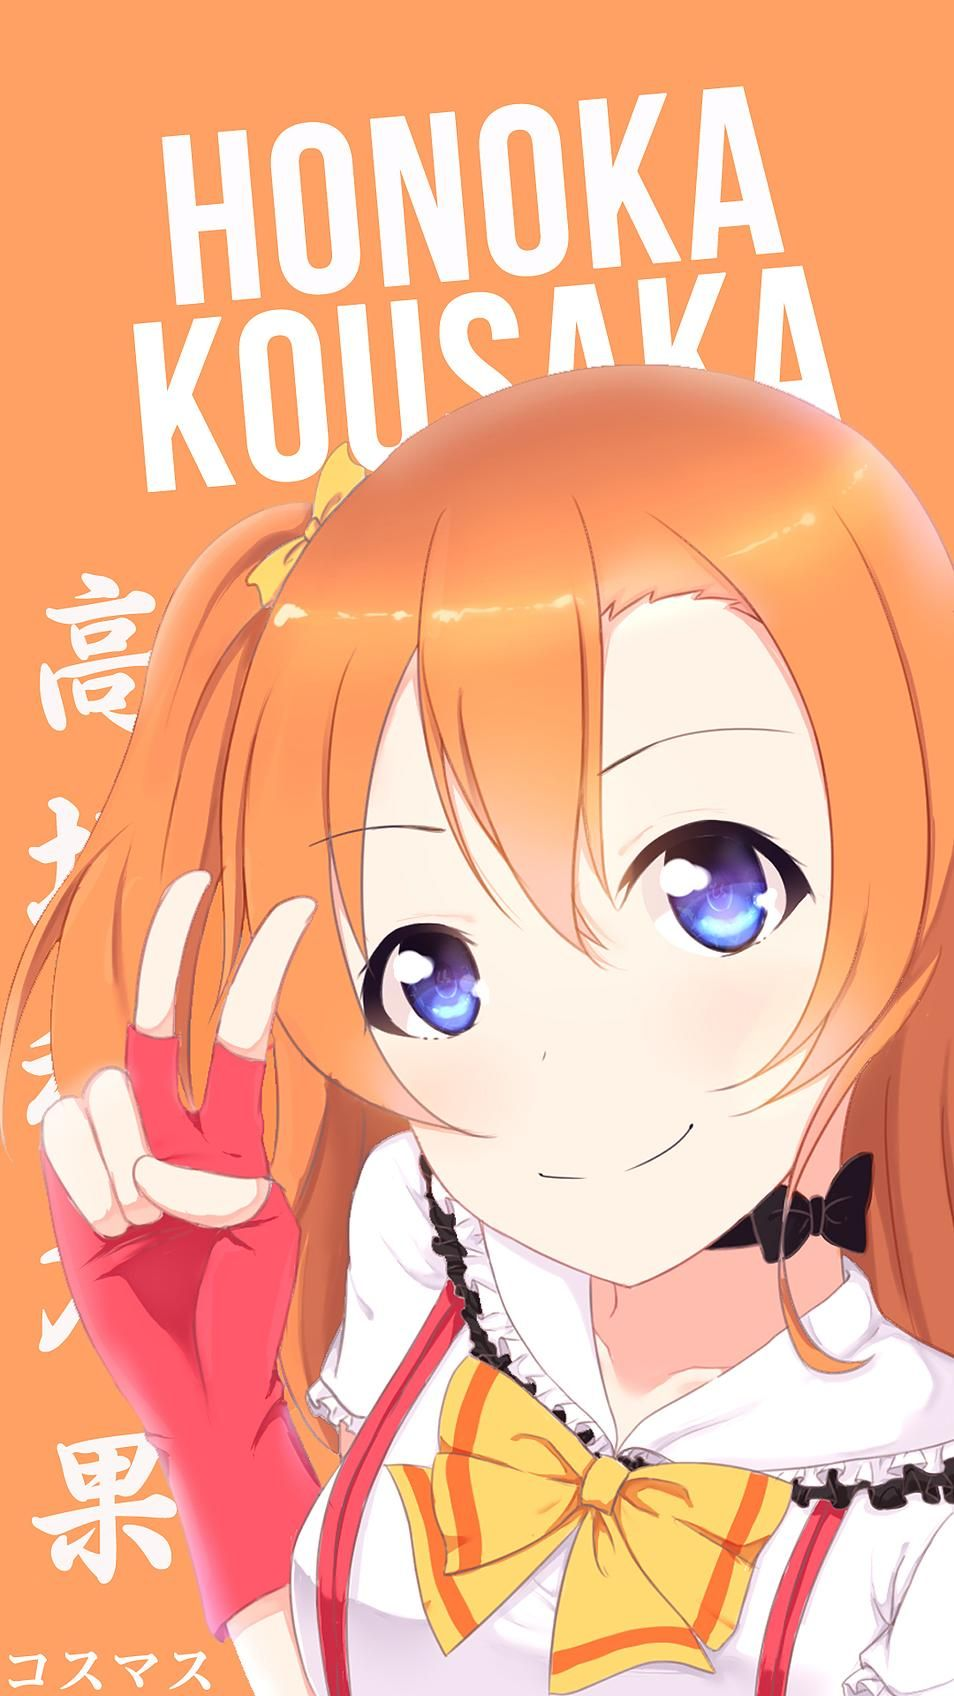 Kousaka honoka korigengi wallpaper anime anime character names anime girl cute anime